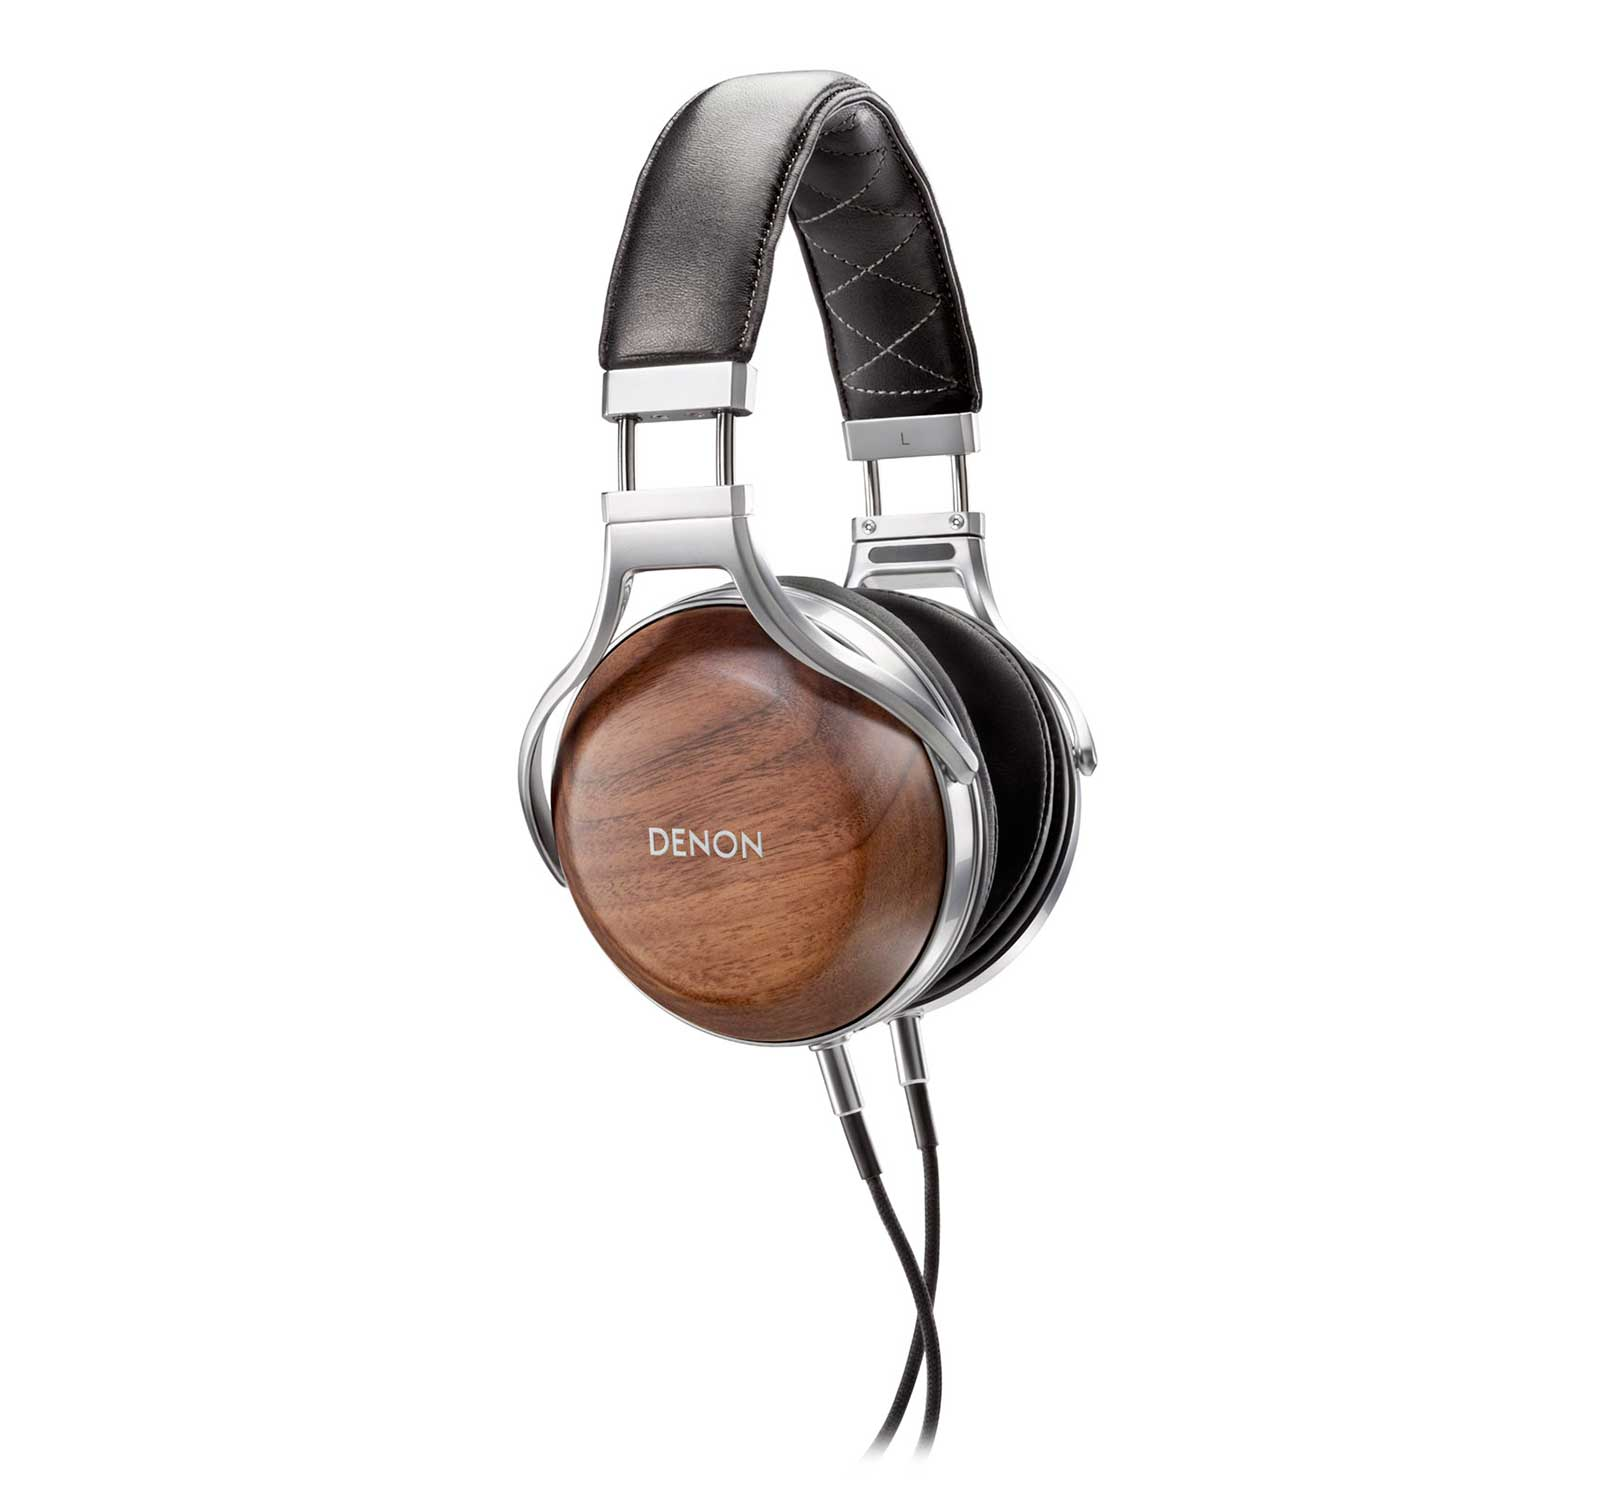 Denon AHD7200 Over-ear Headphones